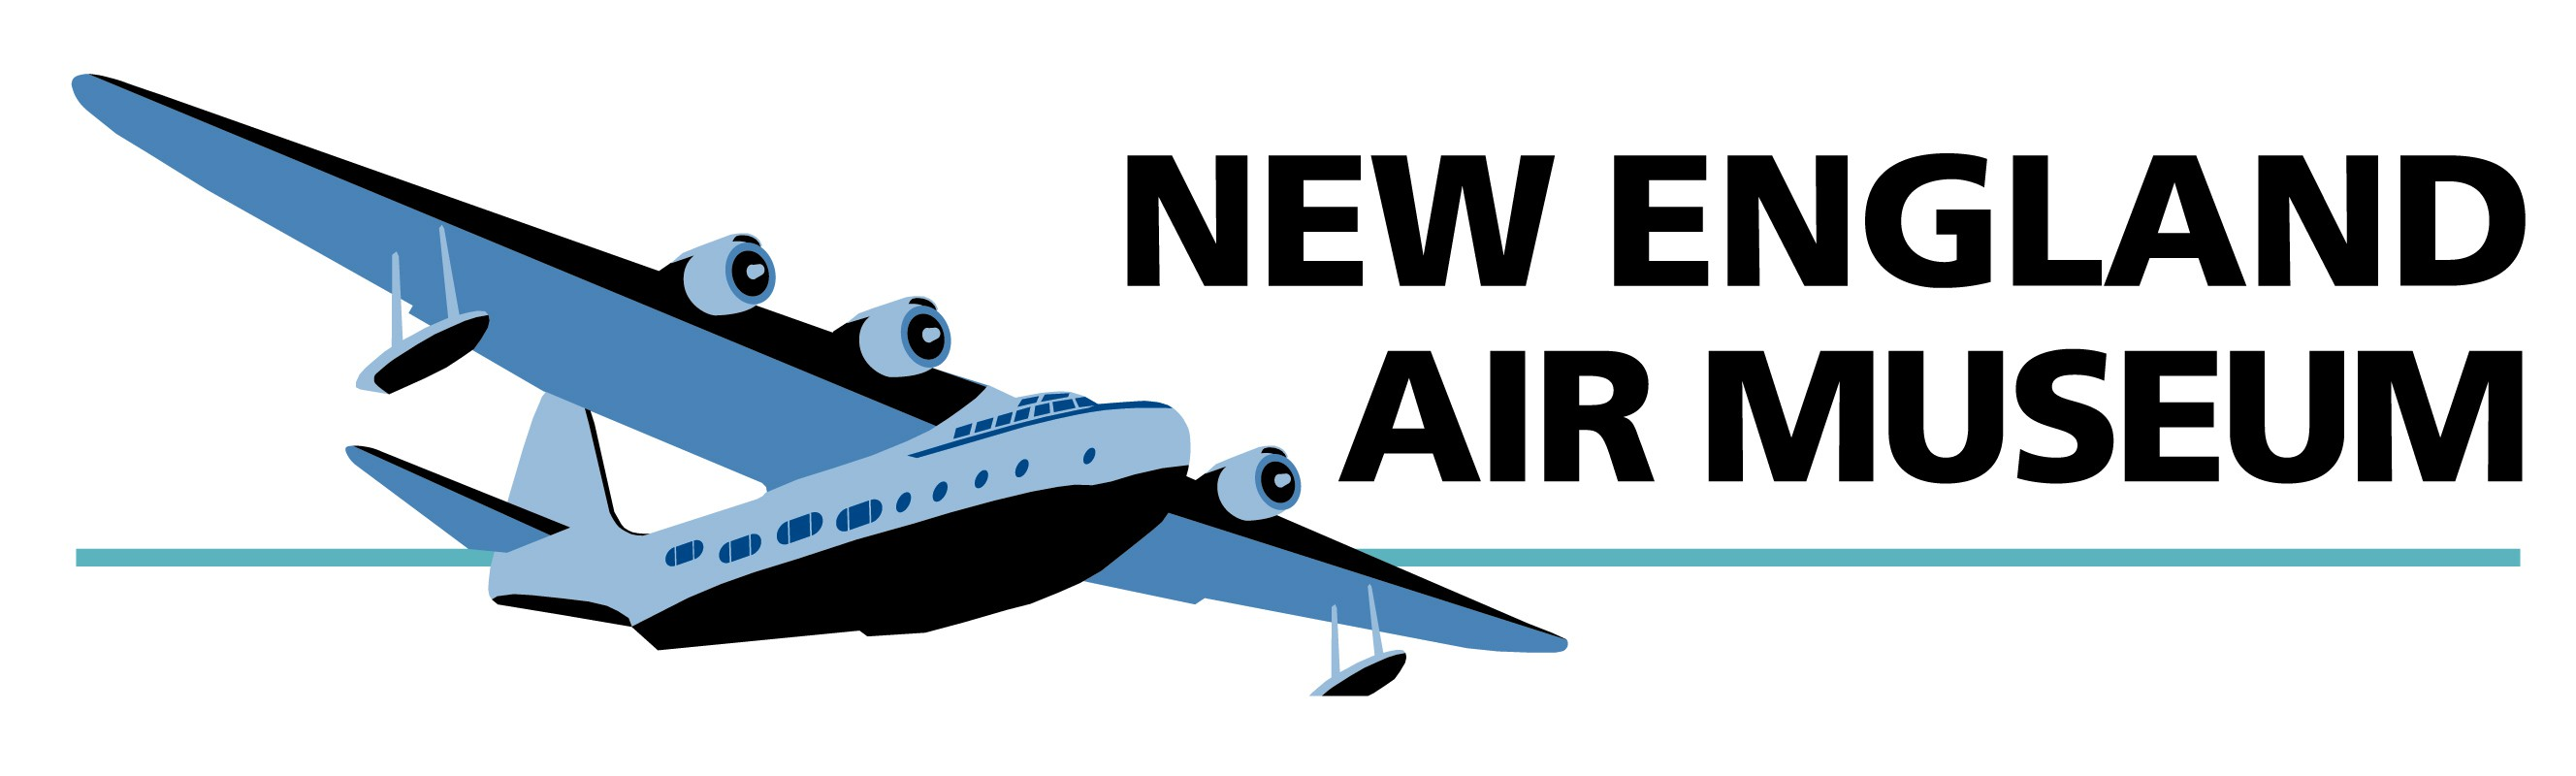 Image result for new england air museum logo